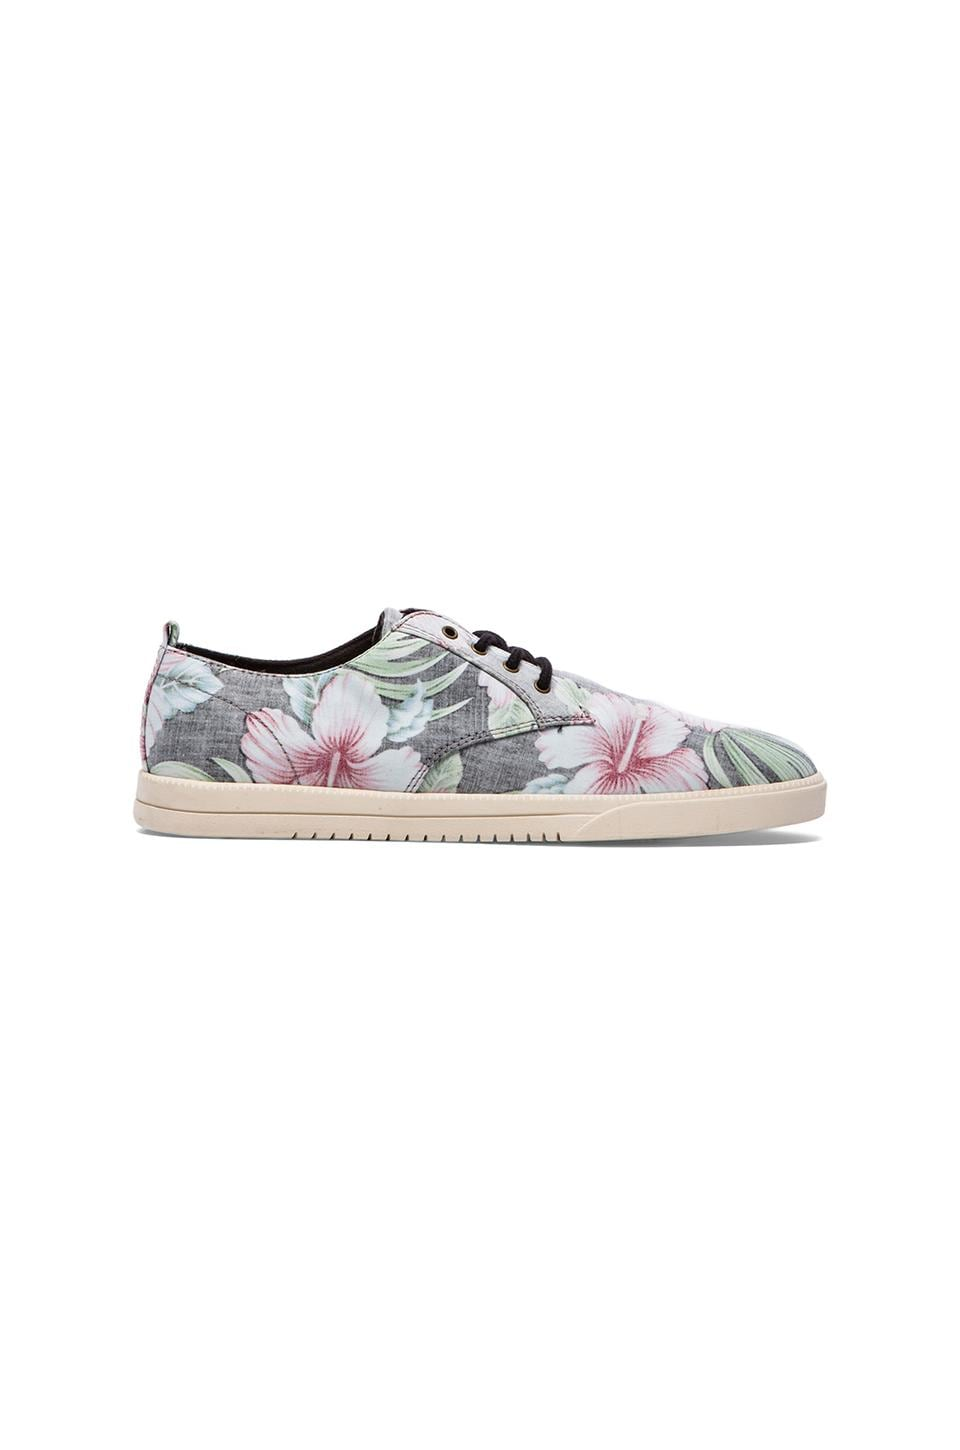 Clae Ellington Textile in Black Floral Hawaii Canvas